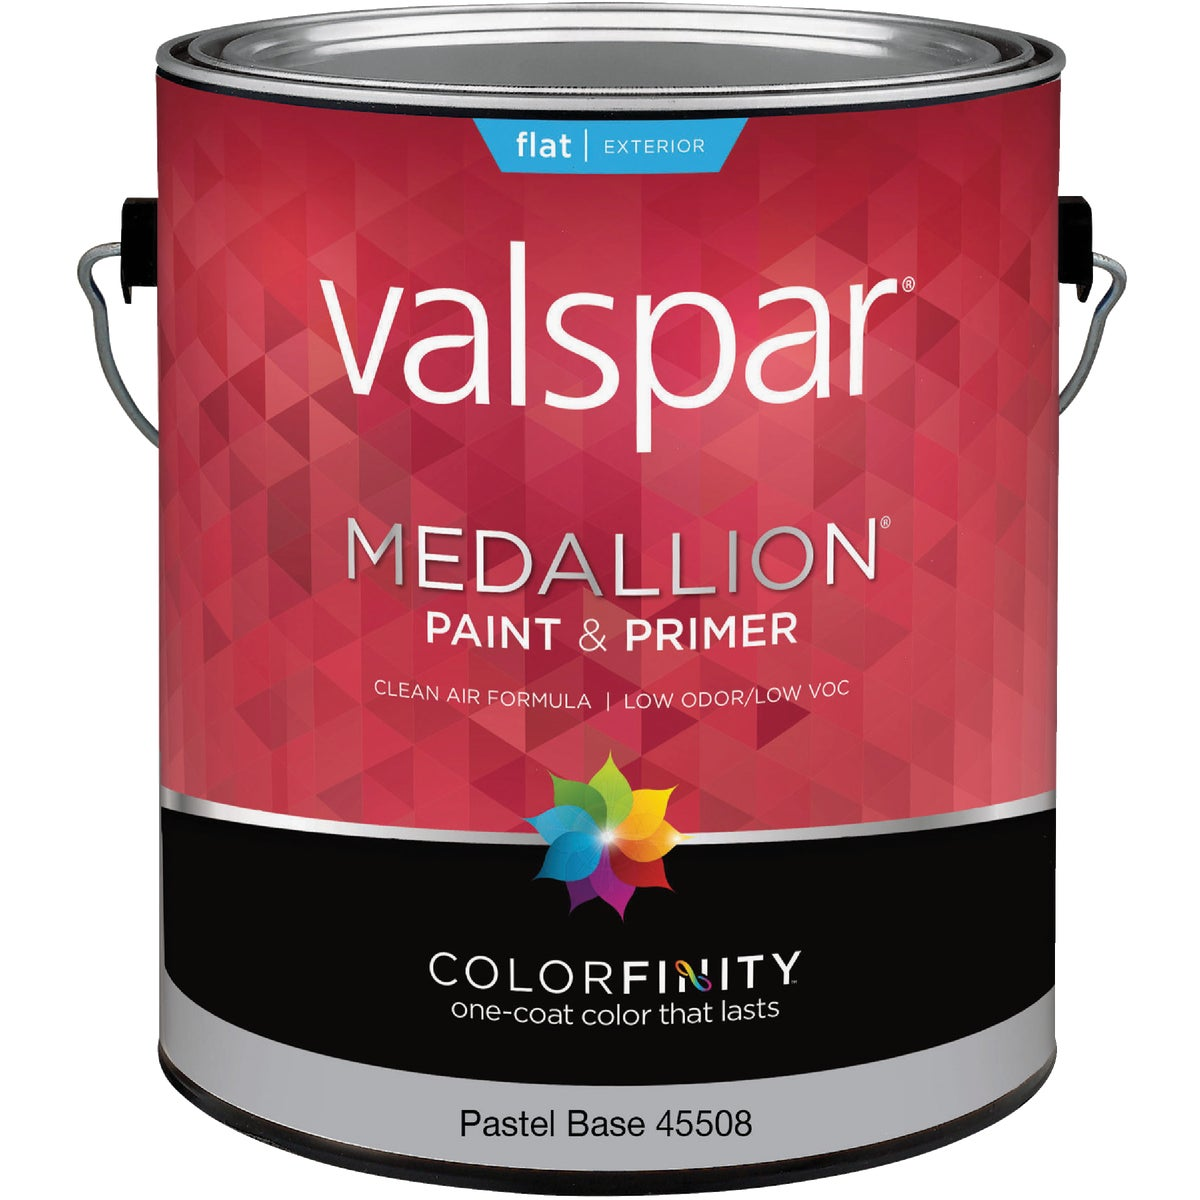 EXT FLAT PASTEL BS PAINT - 027.0045508.007 by Valspar Corp